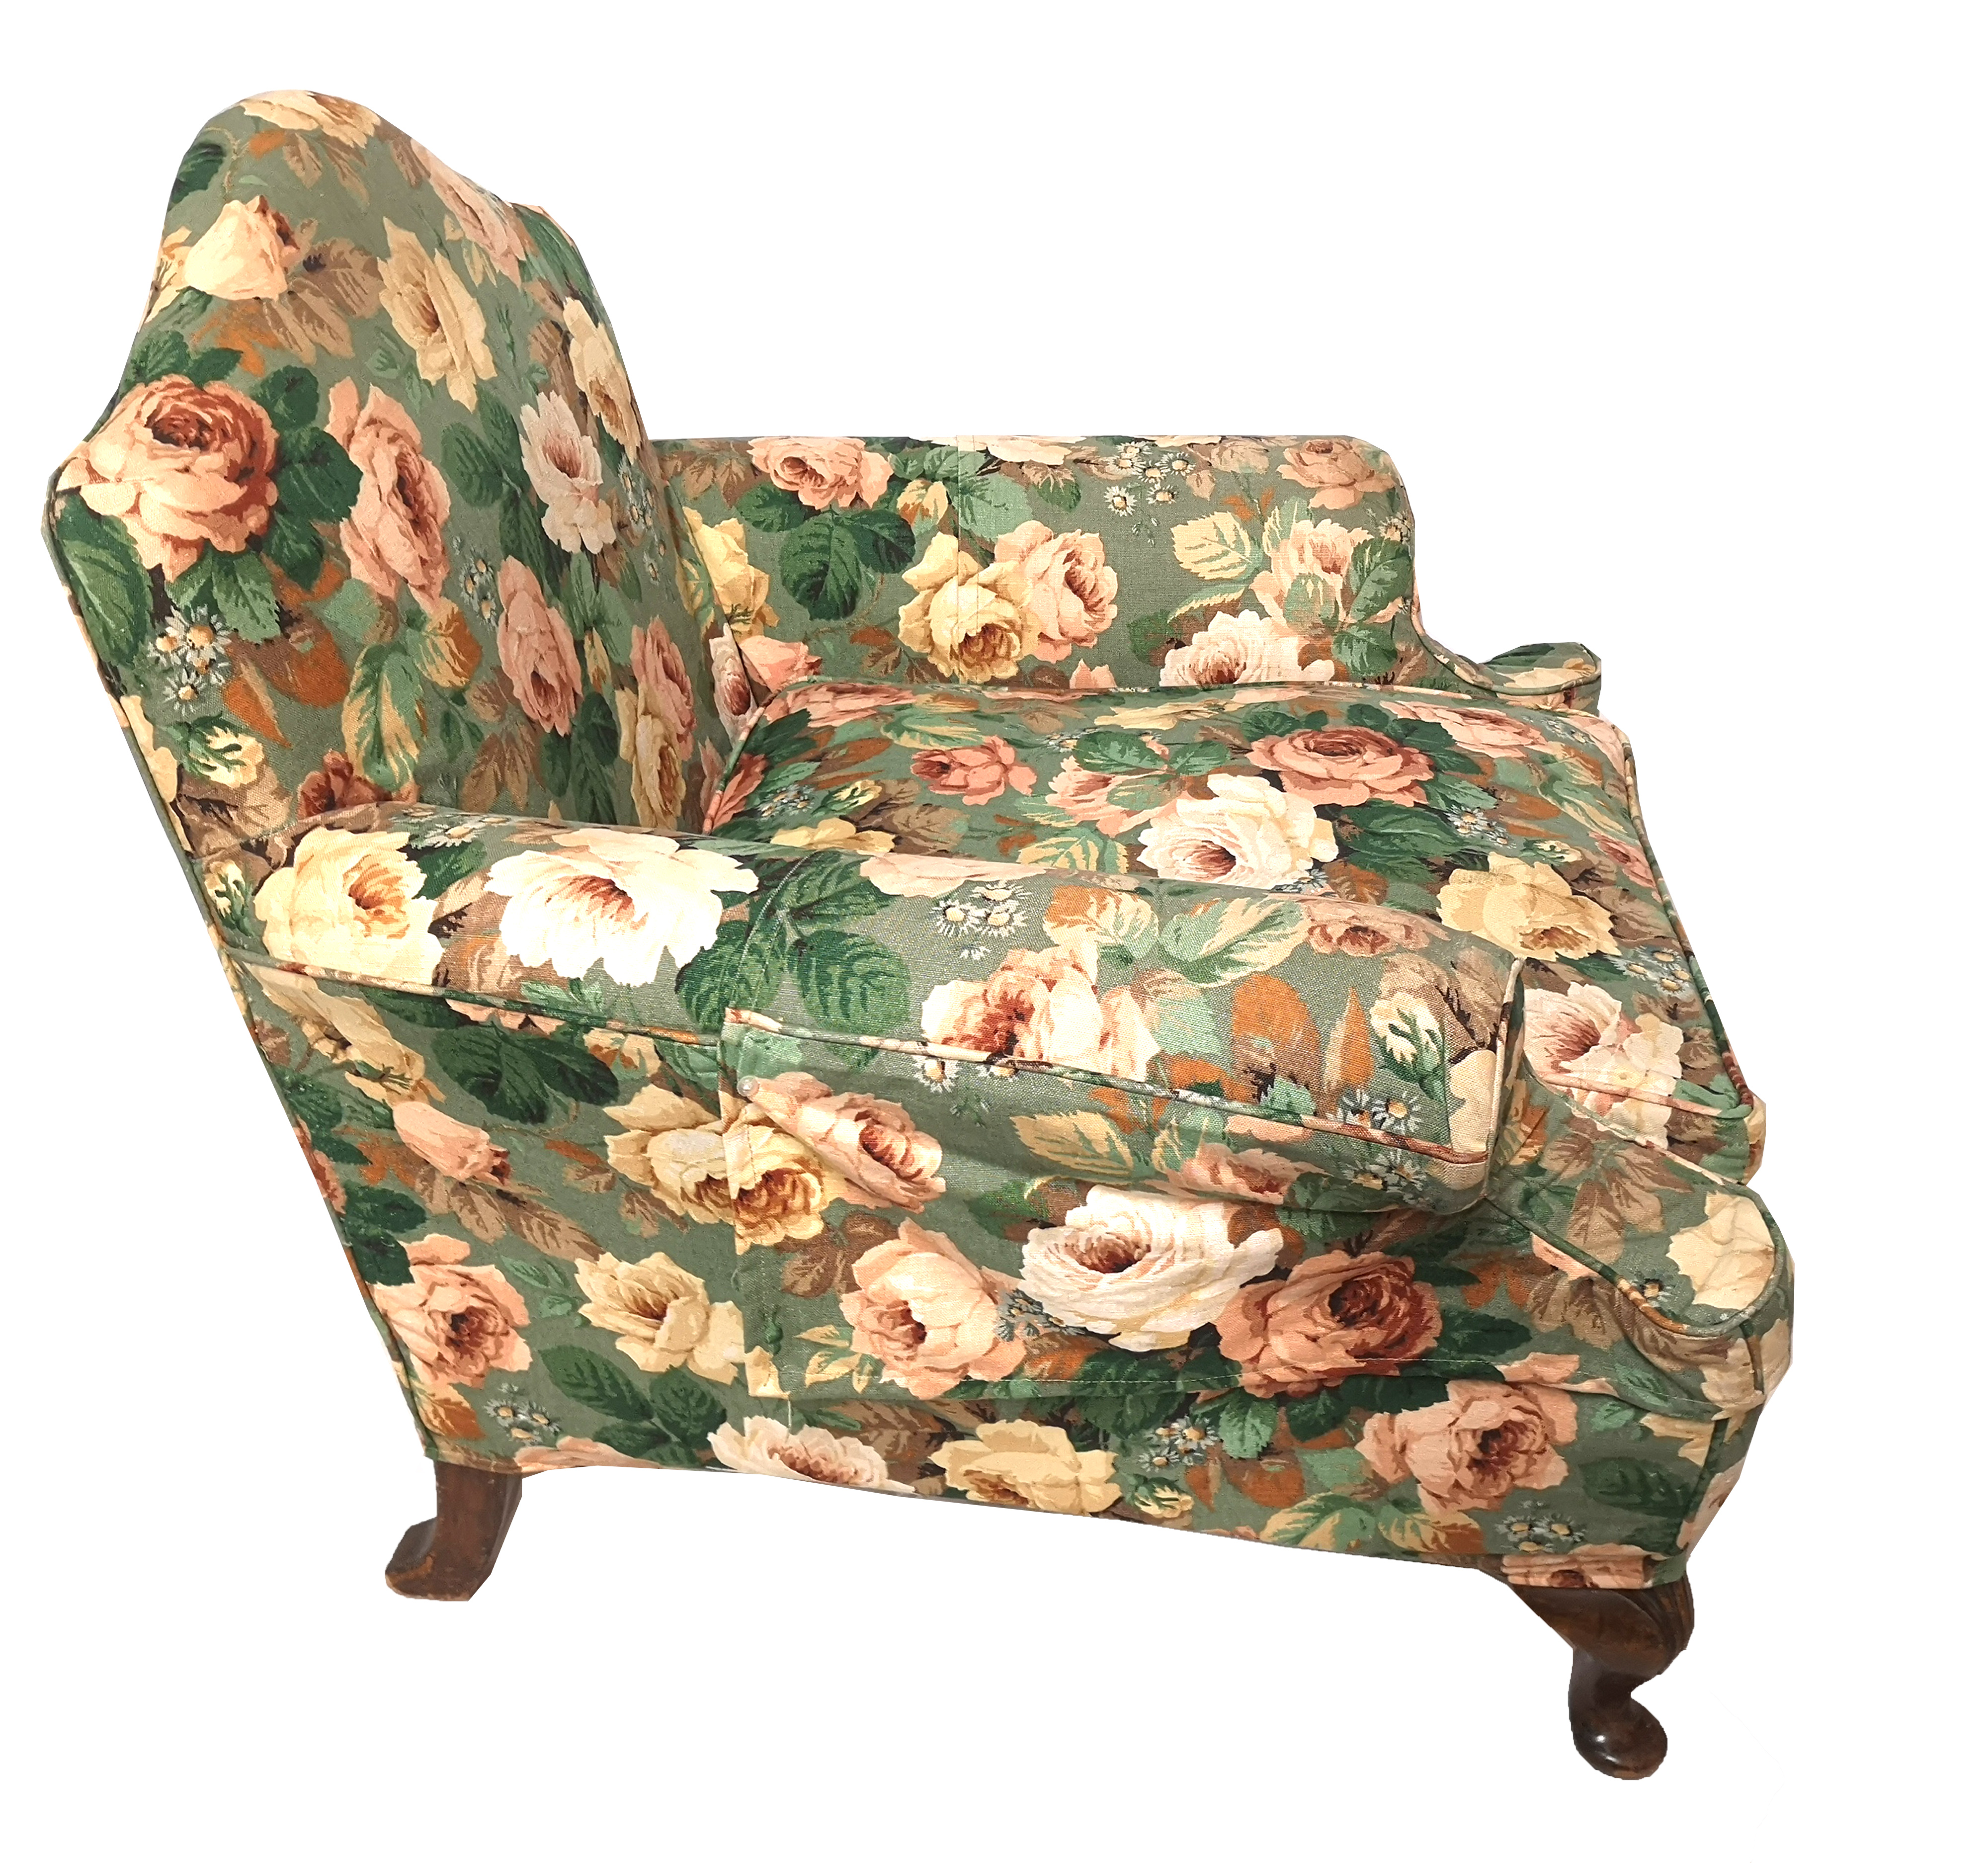 Lot 720 - AN EARLY 20TH CENTURY CLUB ARMCHAIR In a floral upholstery on a green ground, on squat mahogany